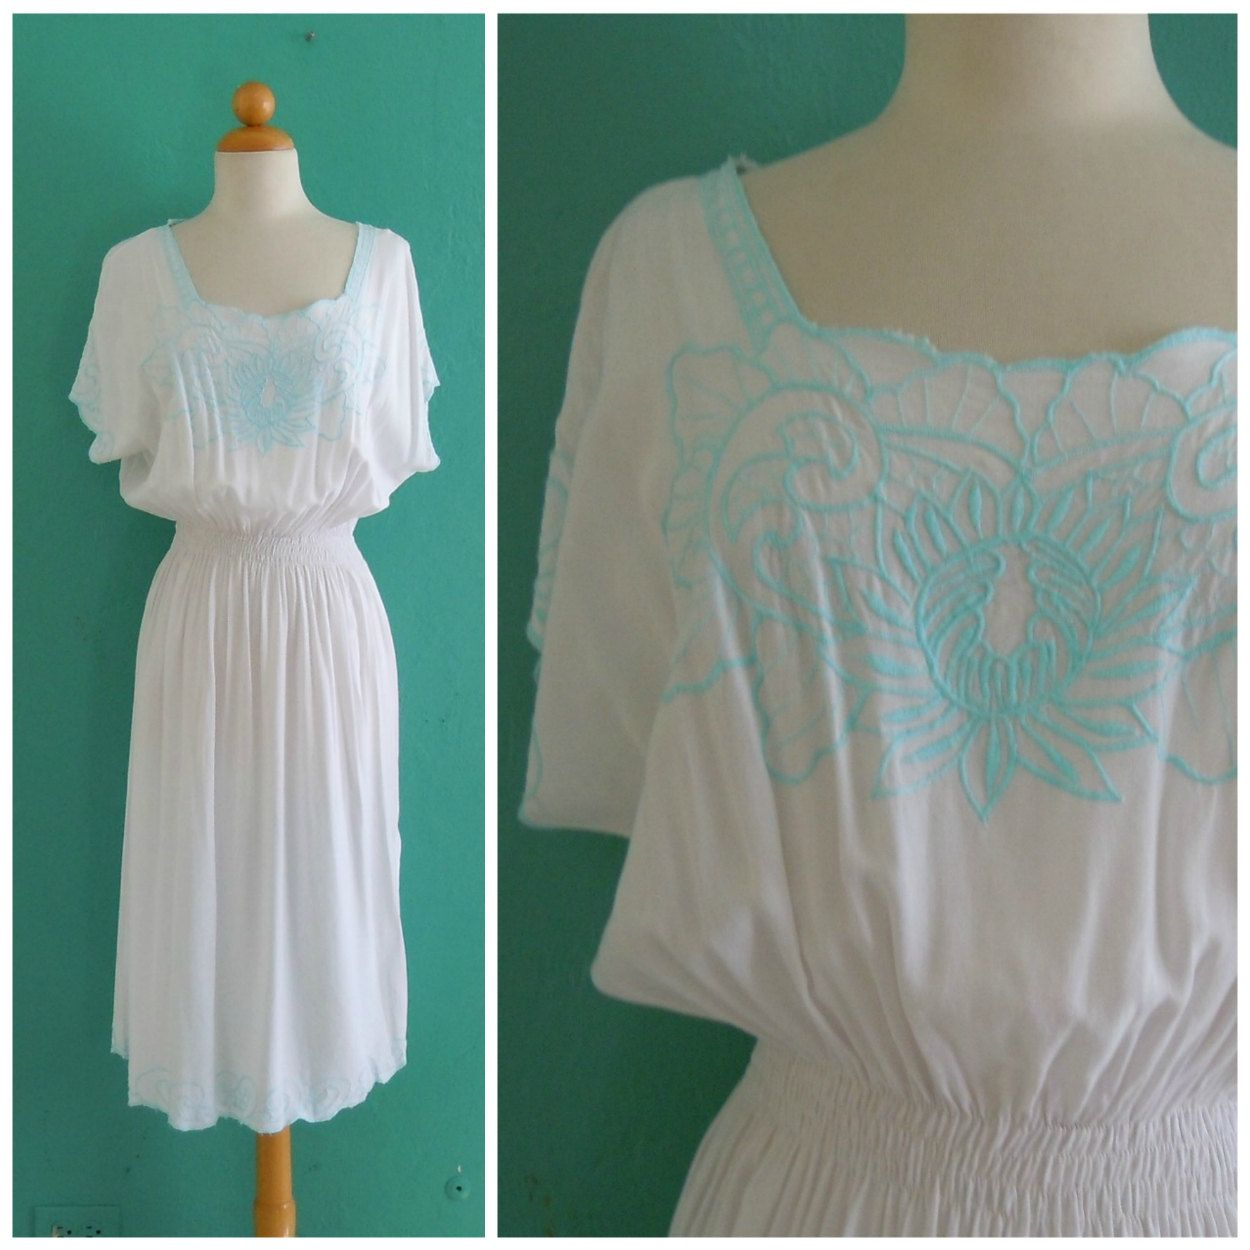 Vintage 80's White Summer Dress With Blue Embroidery By